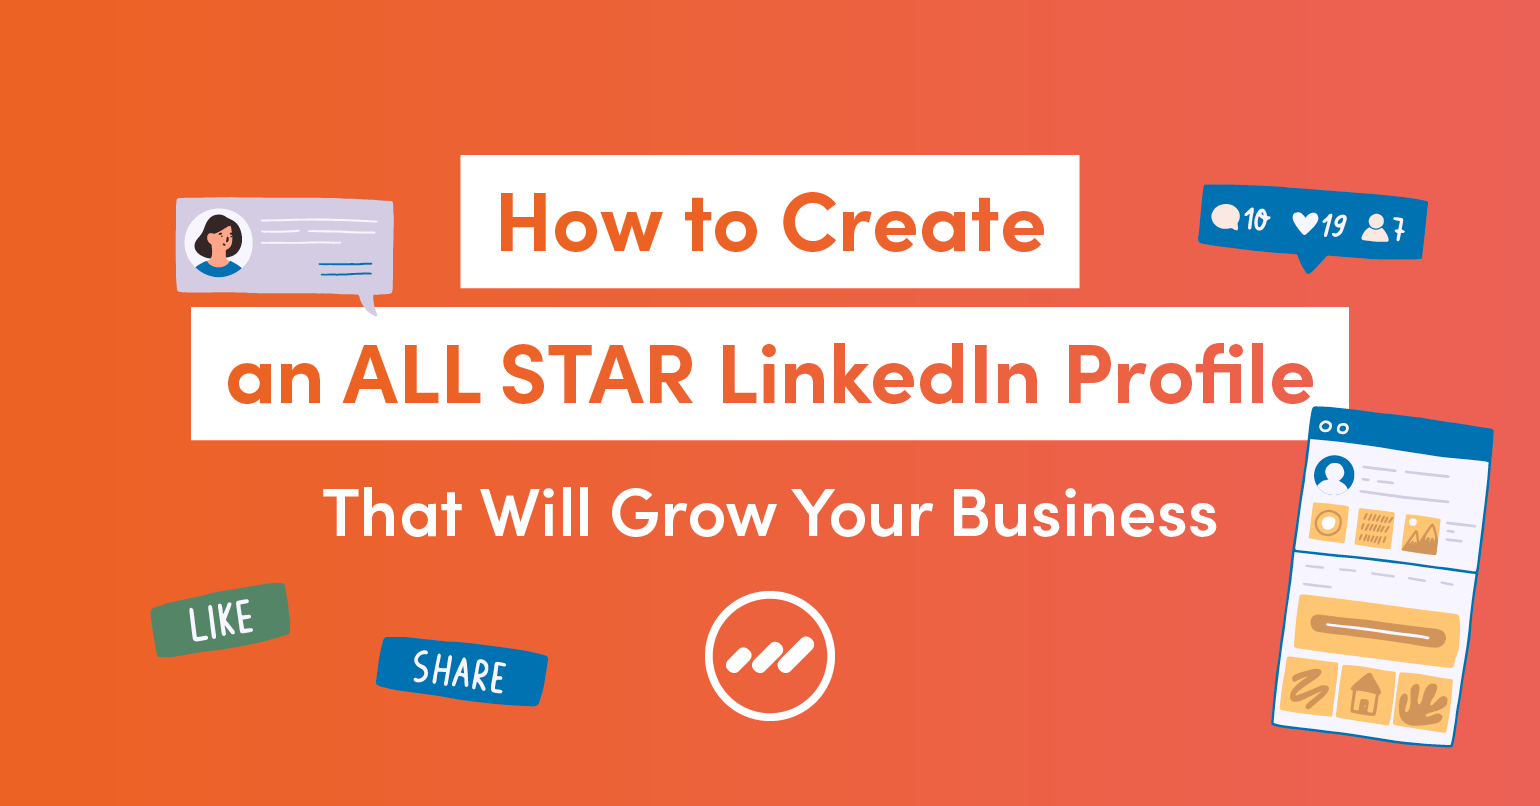 HowtoCreateALLSTARLinkedInProfileThatWillGrowYourBusiness